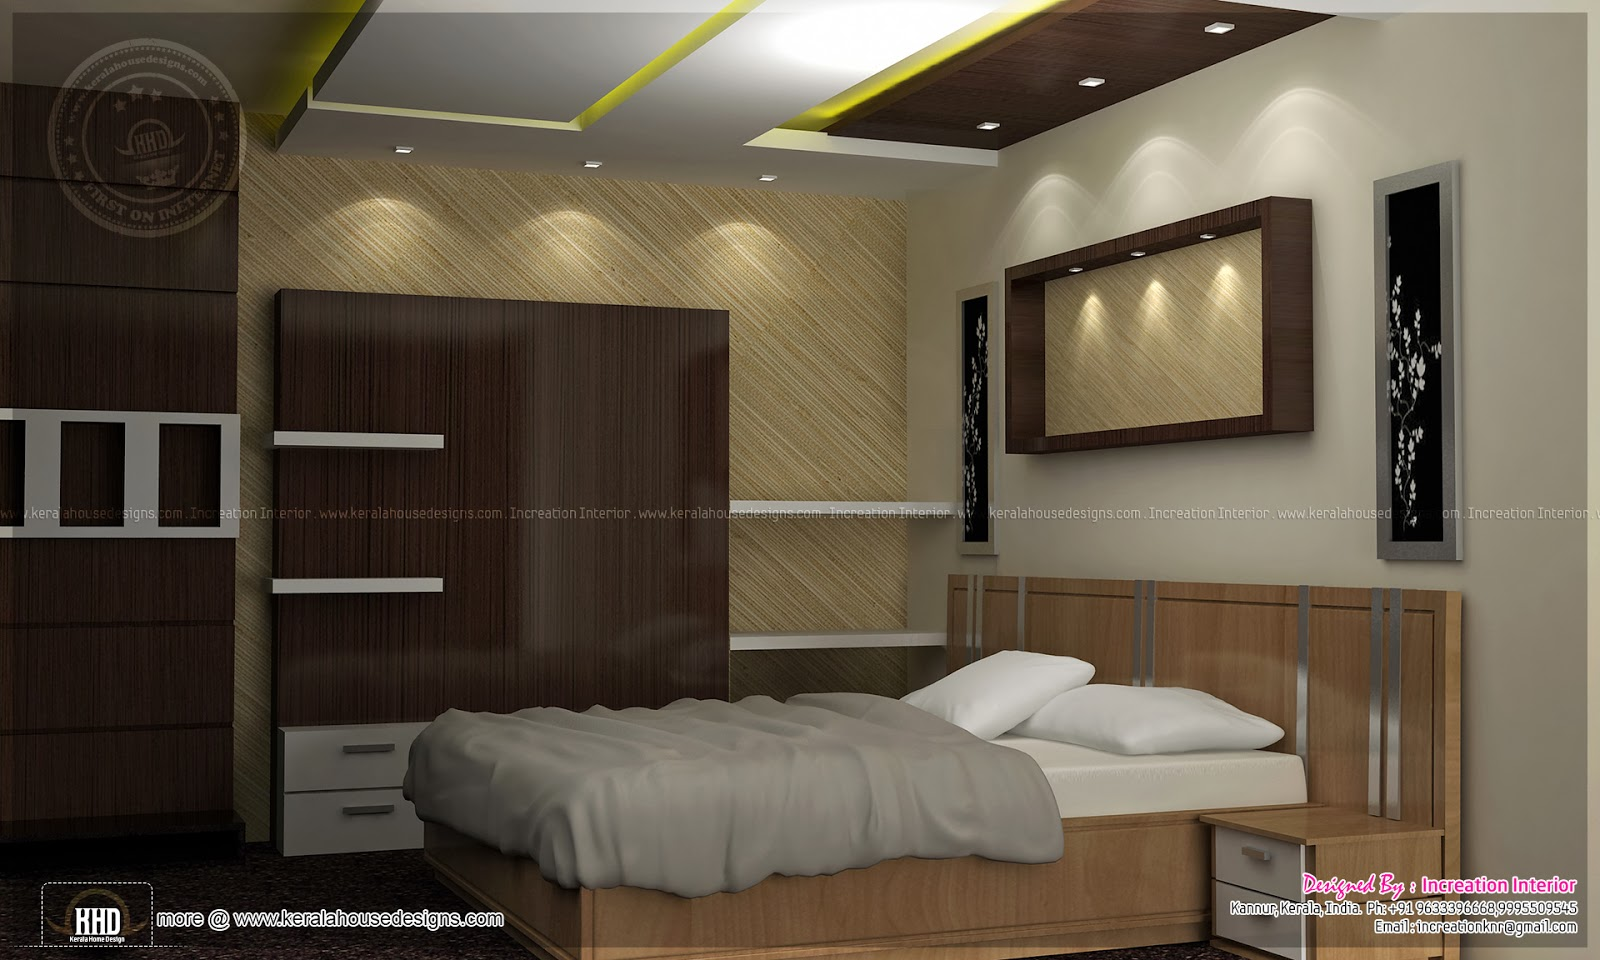 interior design bedroom bedroom interior designs kerala home design and floor plans 11899